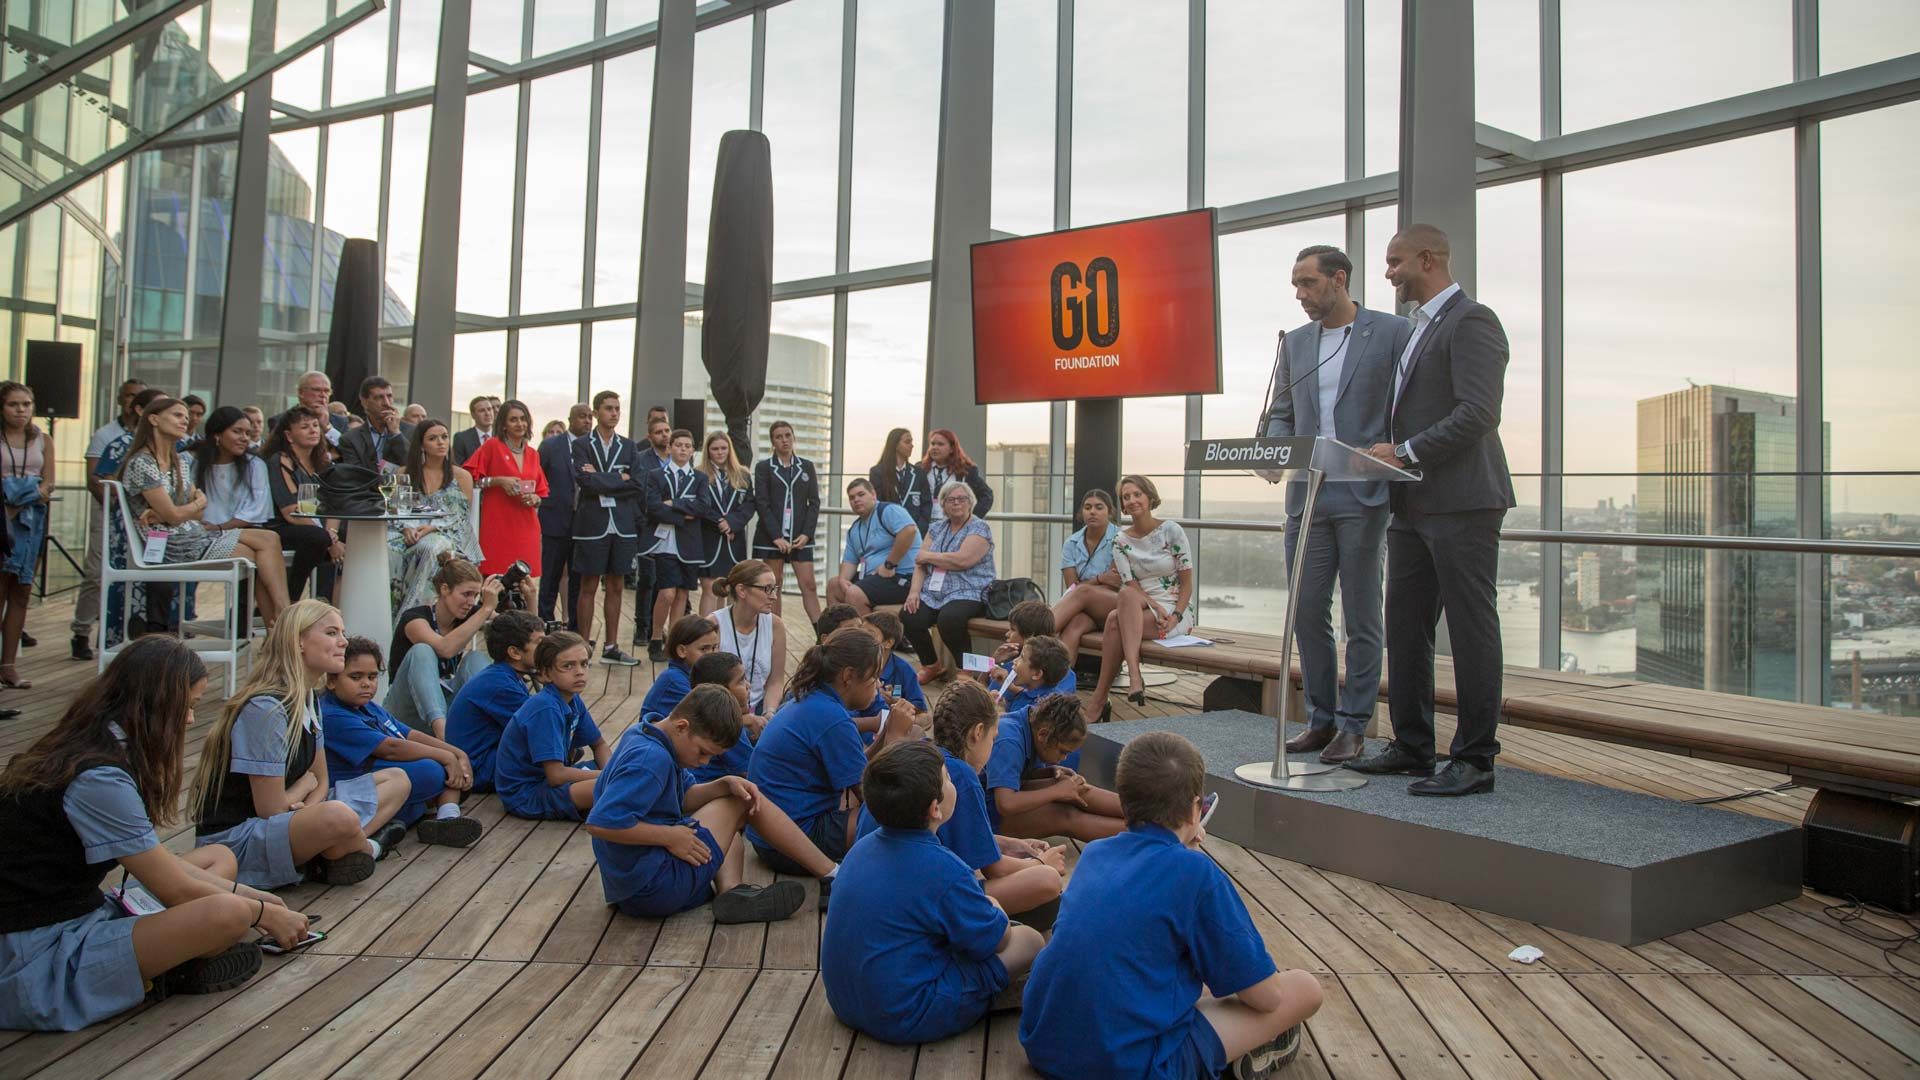 Adam Goodes and Michael O'Loughlin giving a speech for the GO Foundation to a class of students.